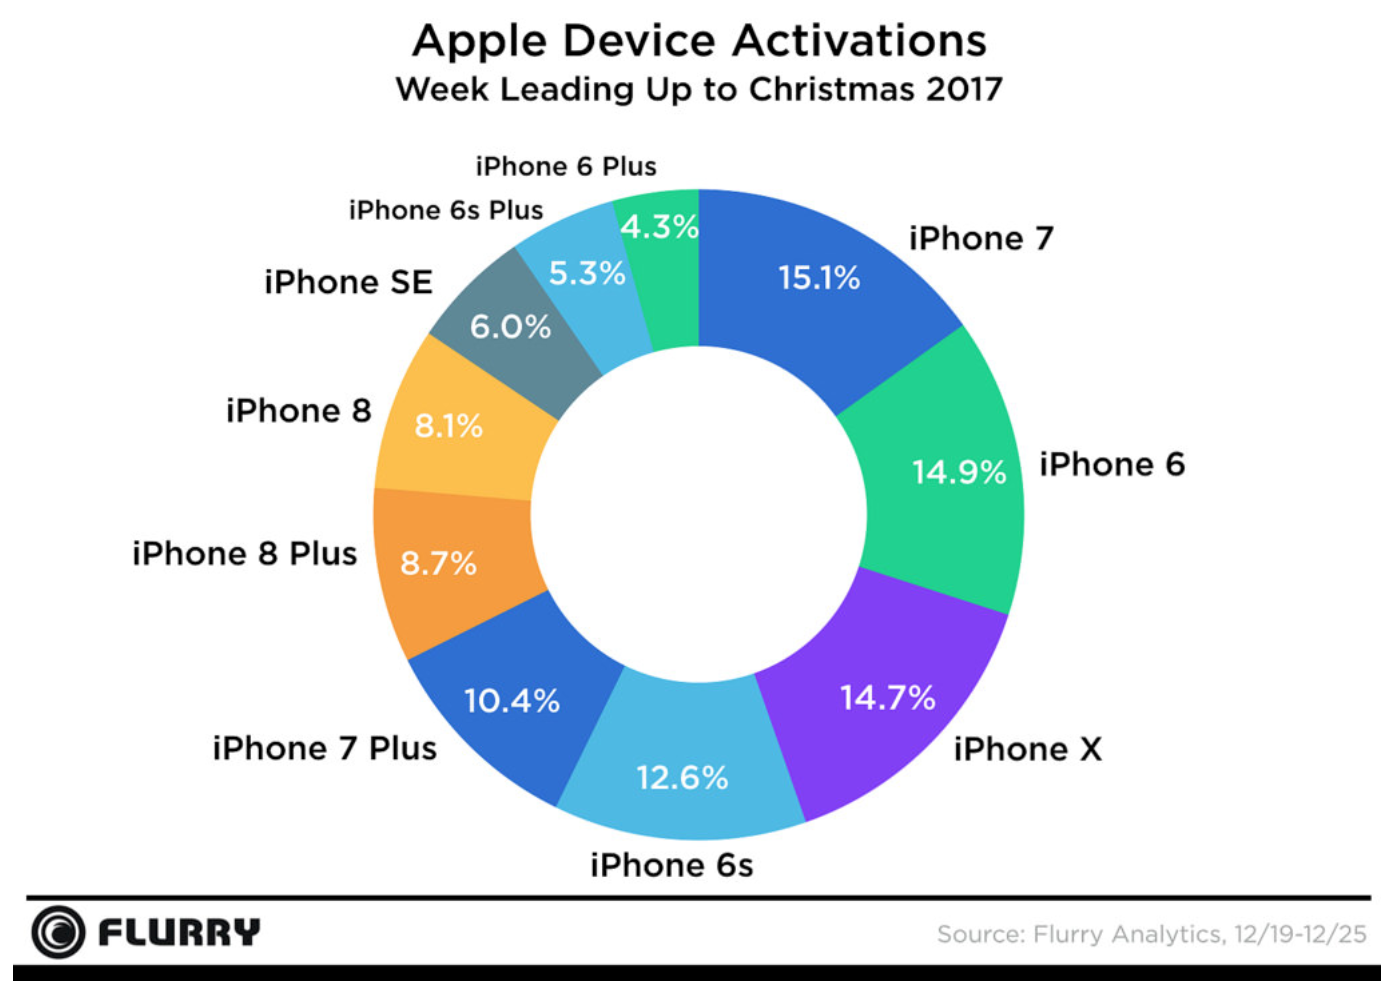 Distribution of new iPhones activated during Christmas 2017